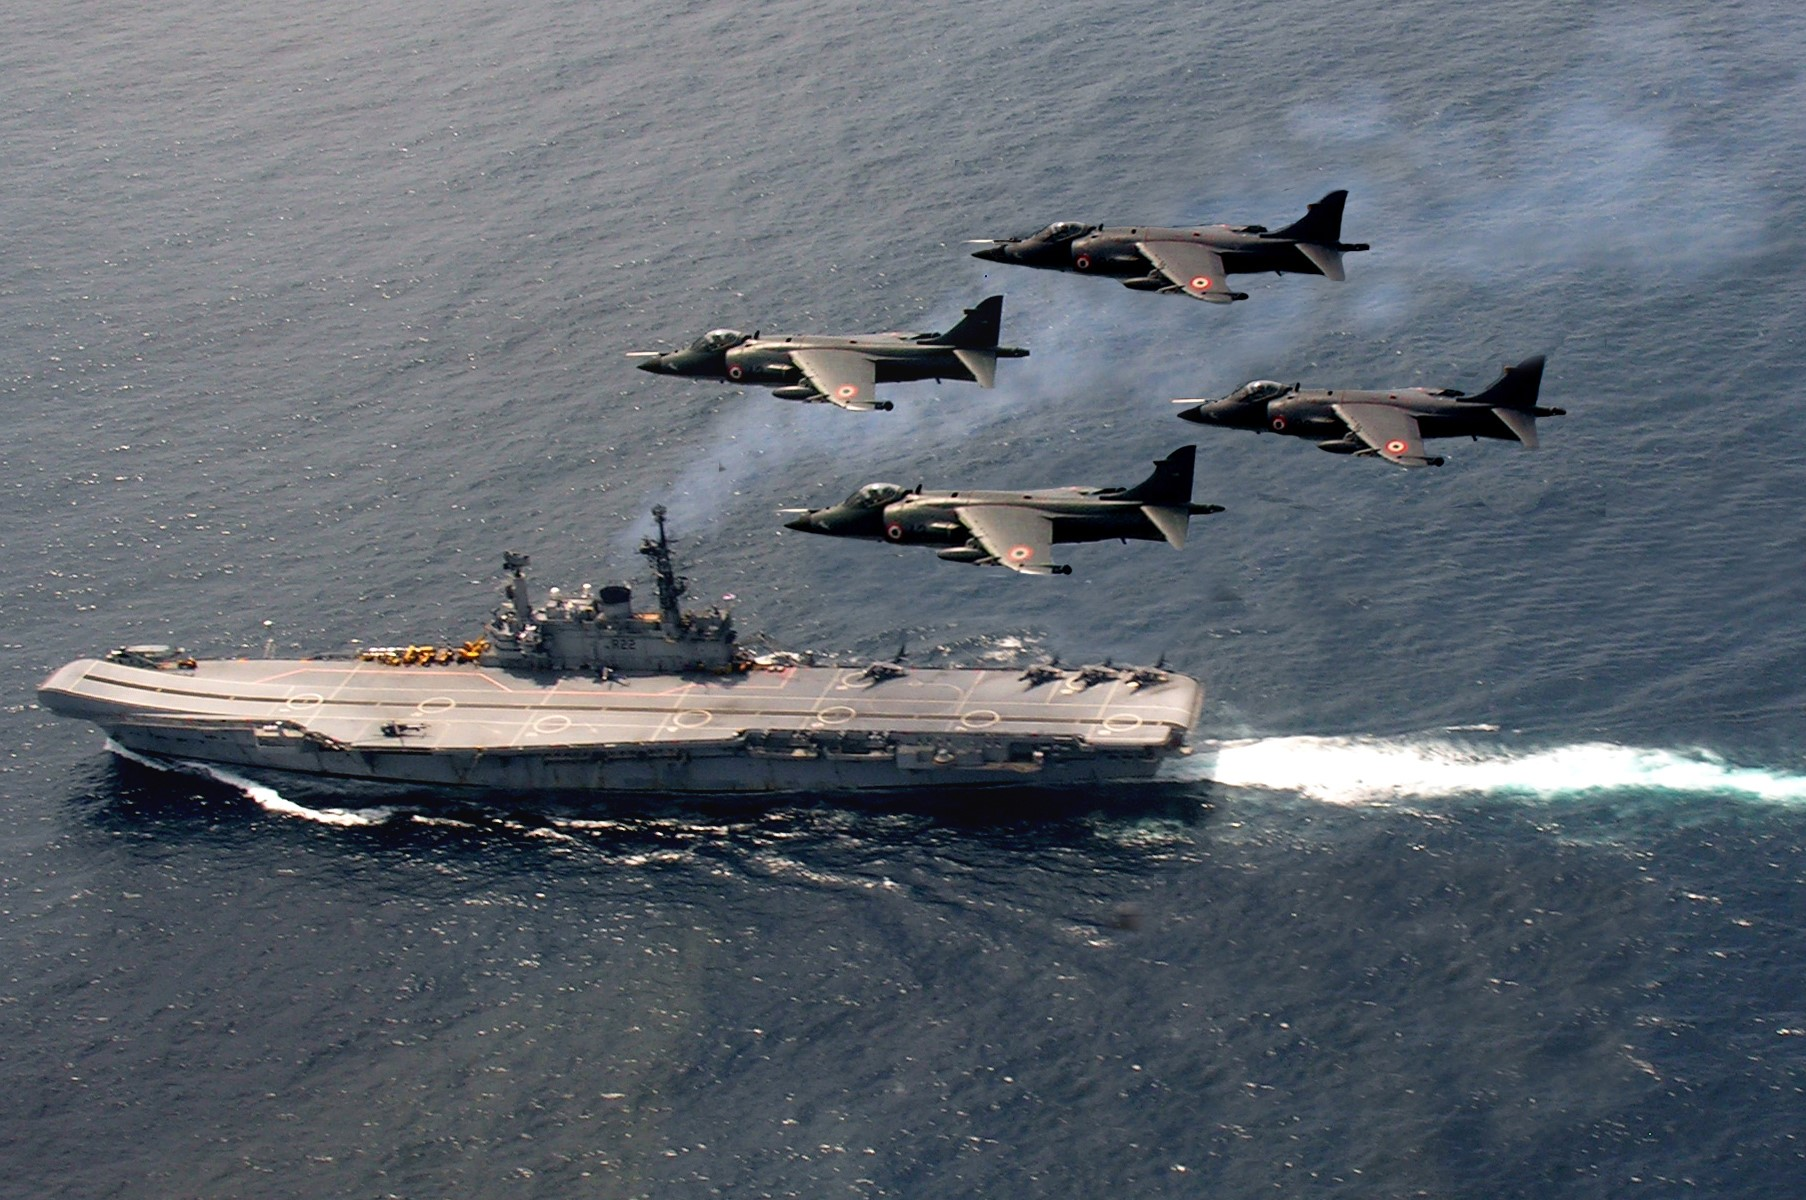 The Guardian Angels: Sea Harriers over the Viraat